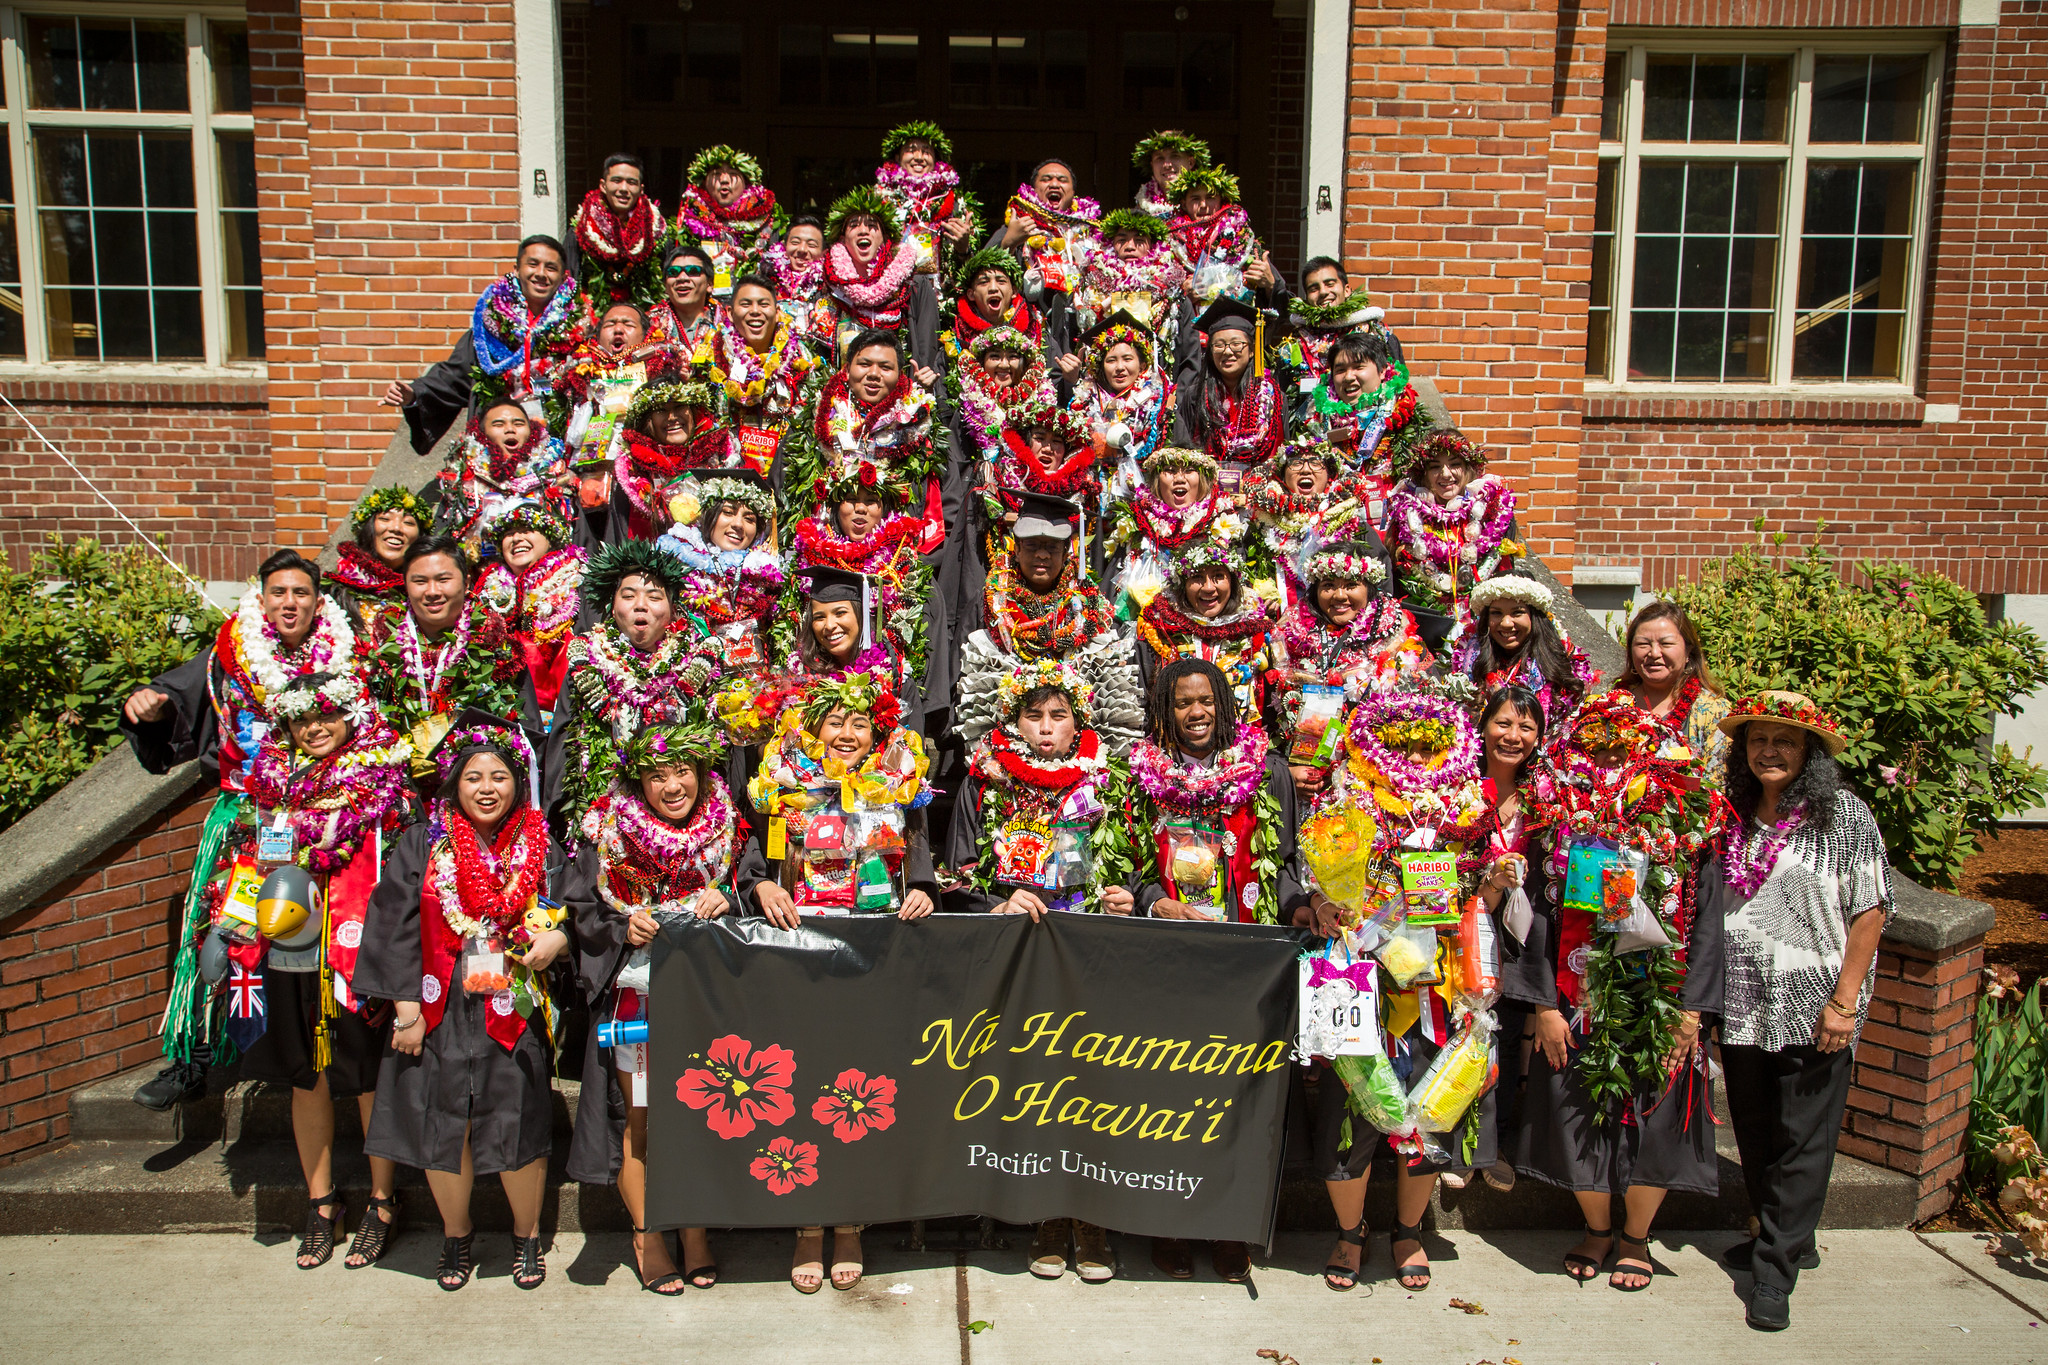 "A modern color photograph of a large group of students dressed in black graduation gowns brightly decorated with flowers, leis, food, candy, and other items. Four students in front hold a black sign that reads, ""Na Haumana O Hawai'i"" and below that in smaller font, ""Pacific University."" To the left of the text there is a graphic of three red and yellow flowers each containing the Hawaiian islands. An older adult not wearing a gown stands in front on the right."